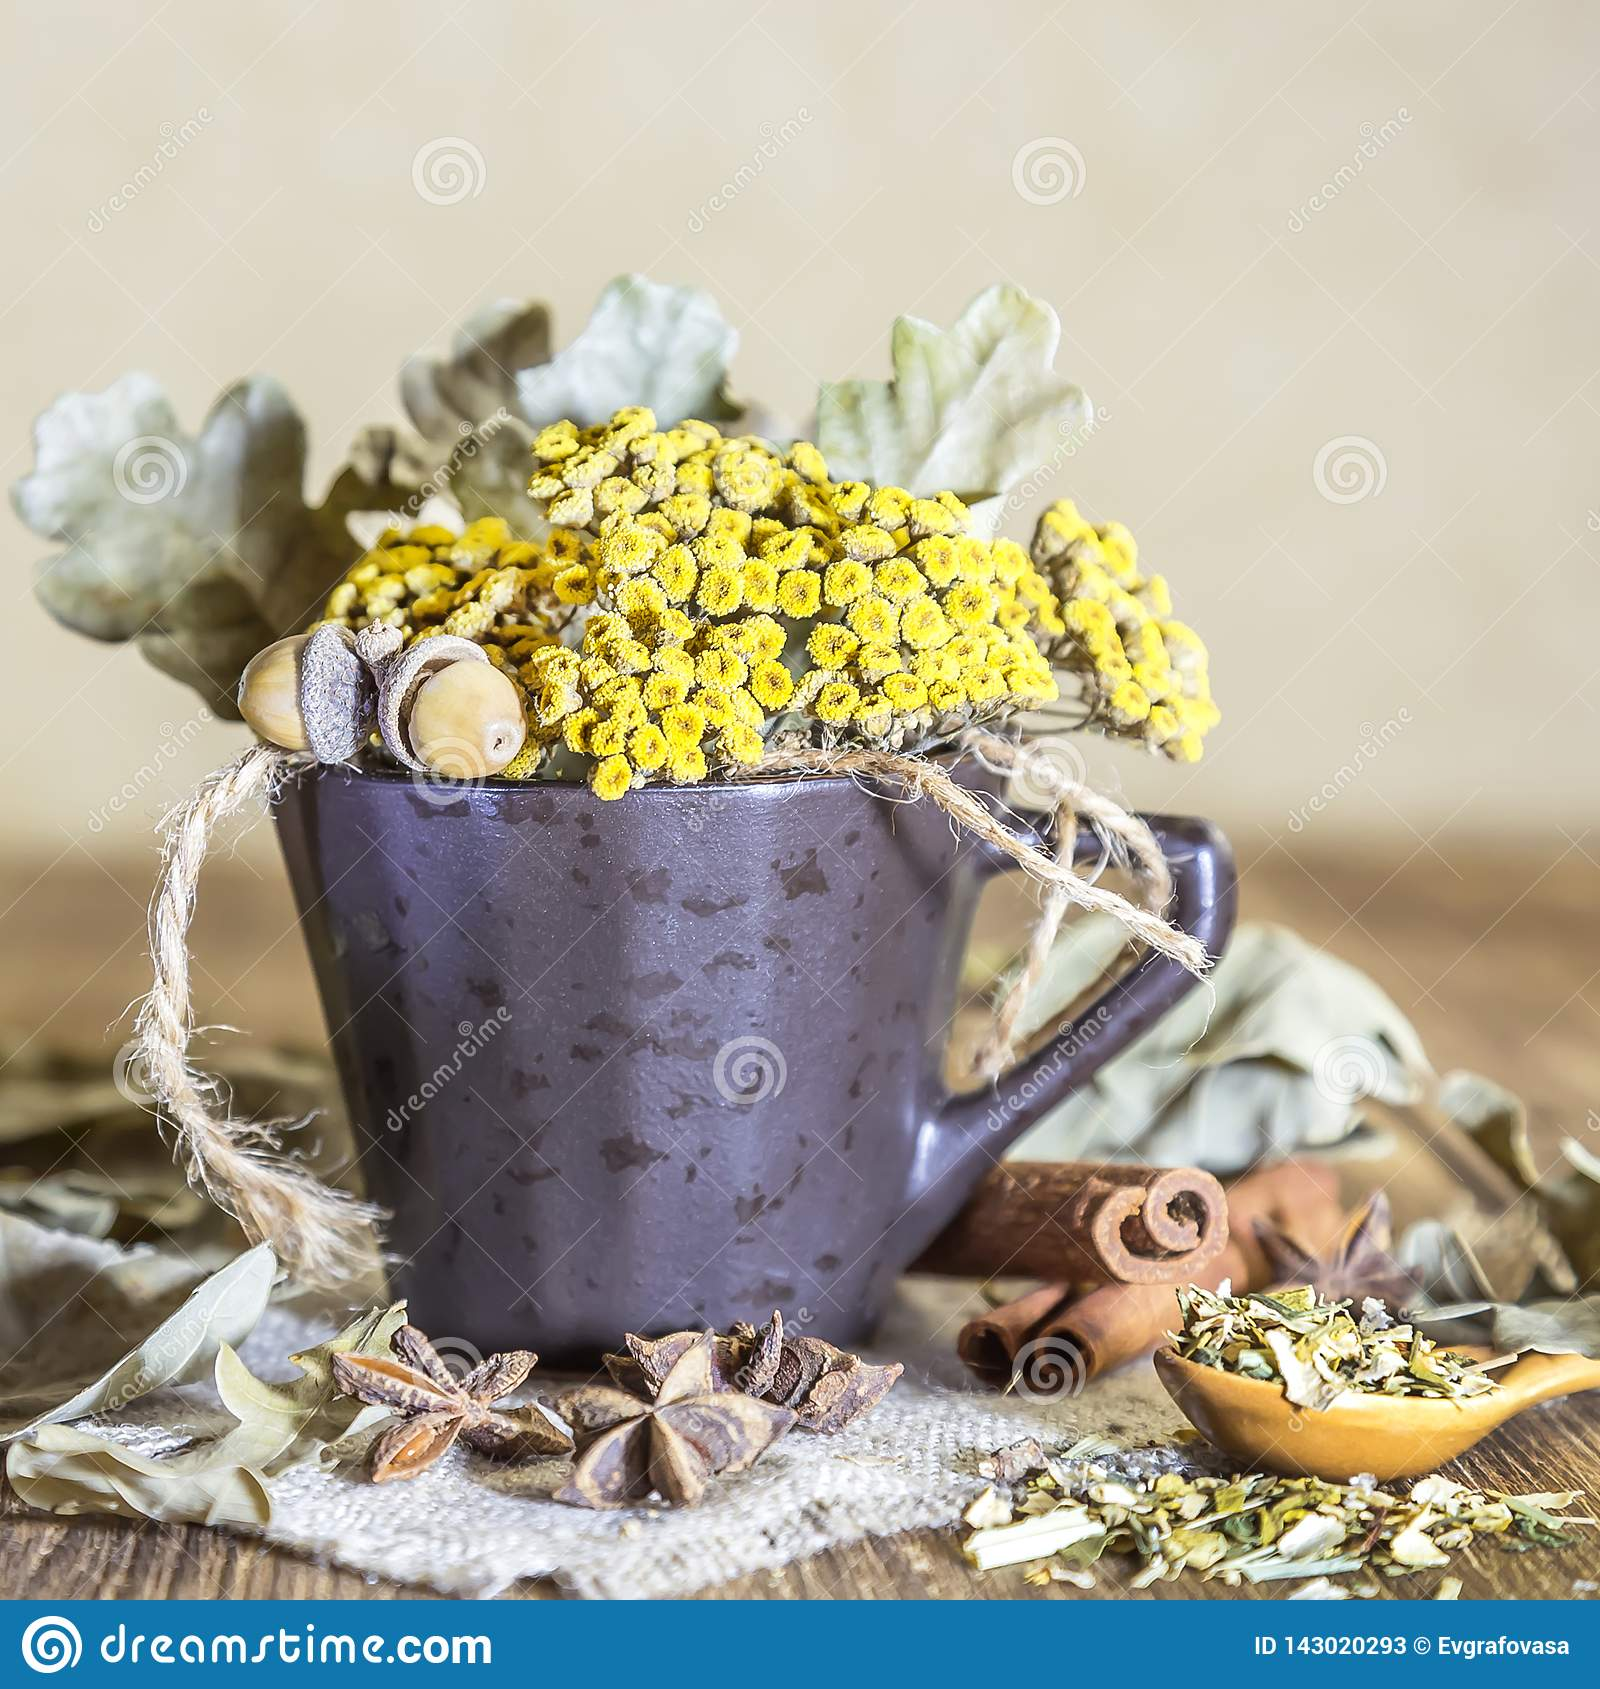 Herbal medicine, homeopathy, the collection of medicinal herbs for tea and medicines. Dried tansy flowers and oak leaves in a cup